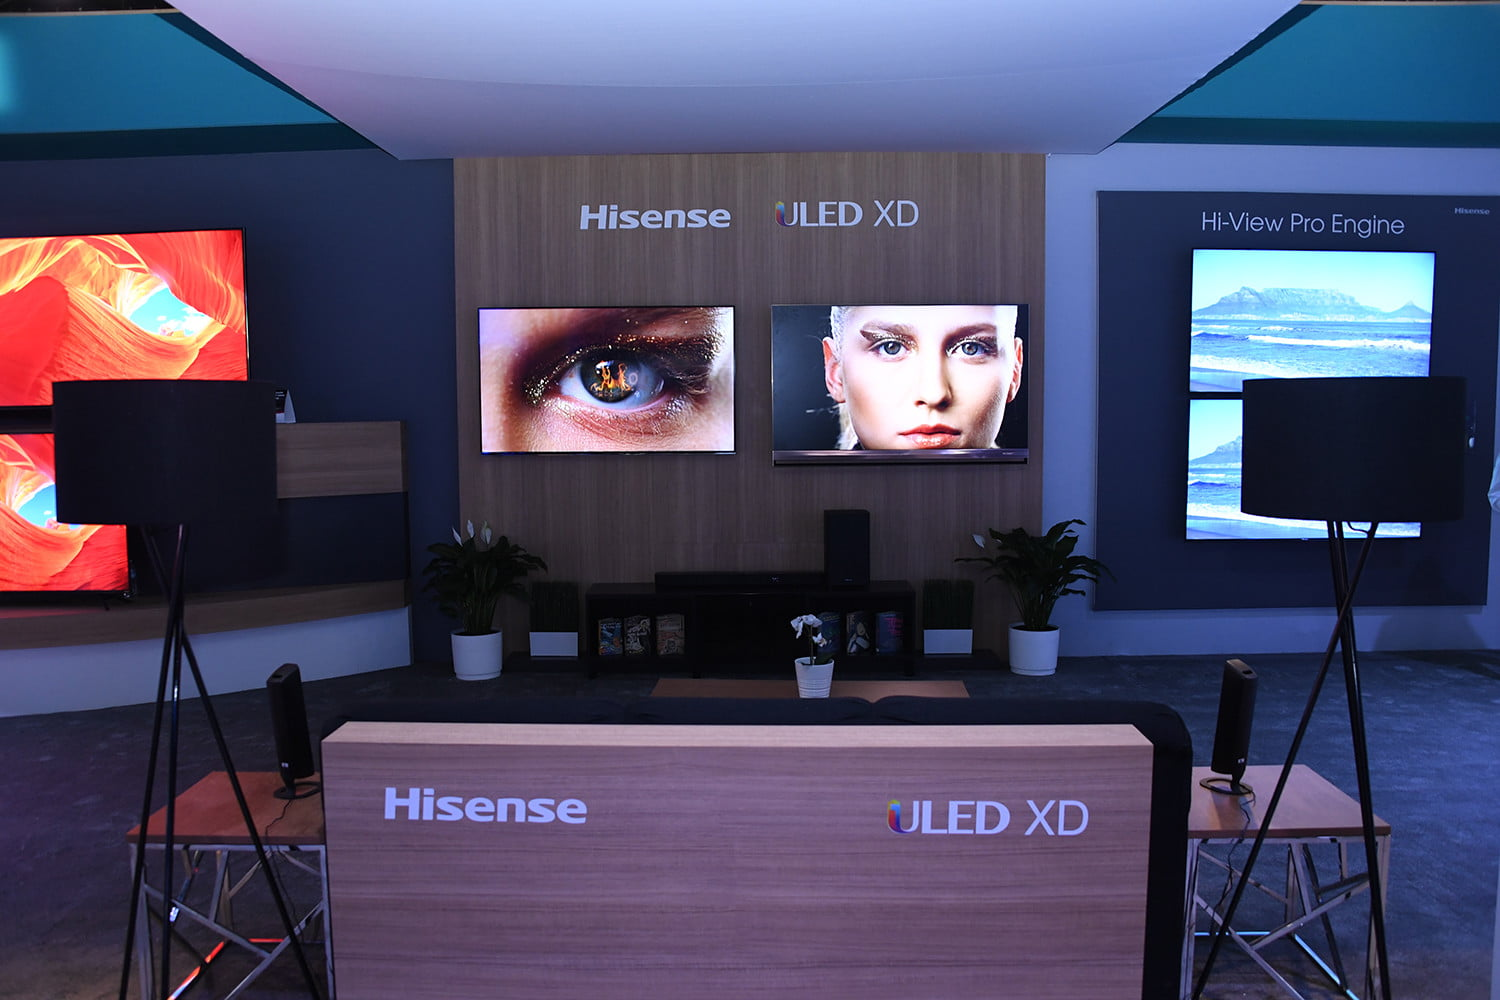 Is this the new gold standard in television technology?